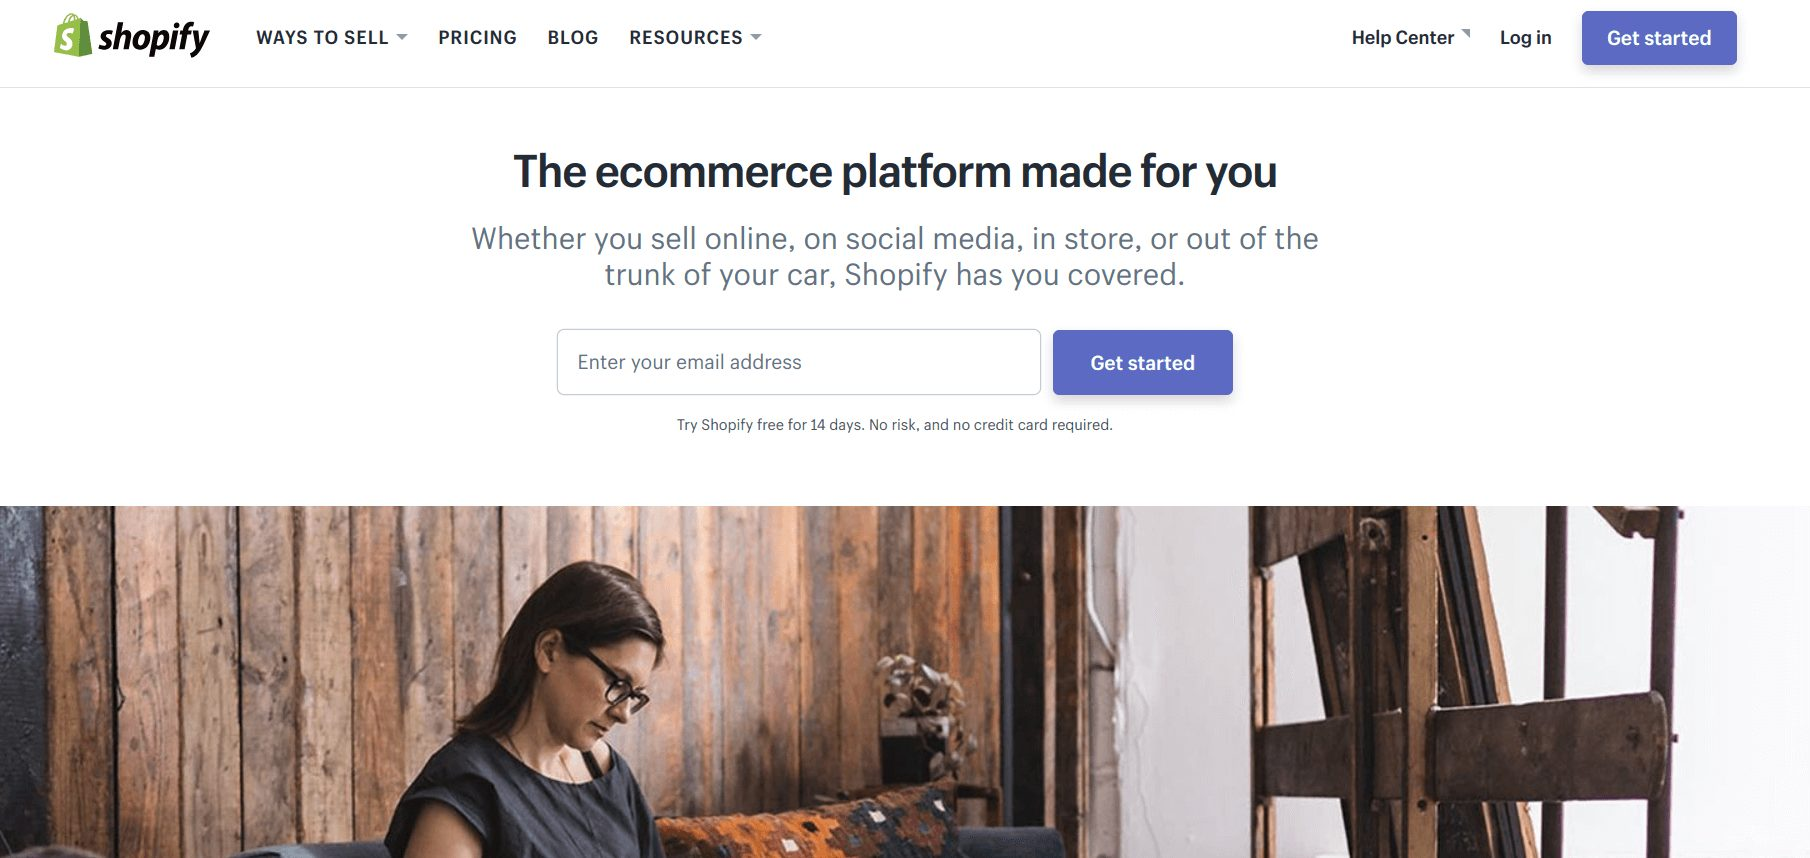 Make Your First Ecommerce Sale: Shopify website